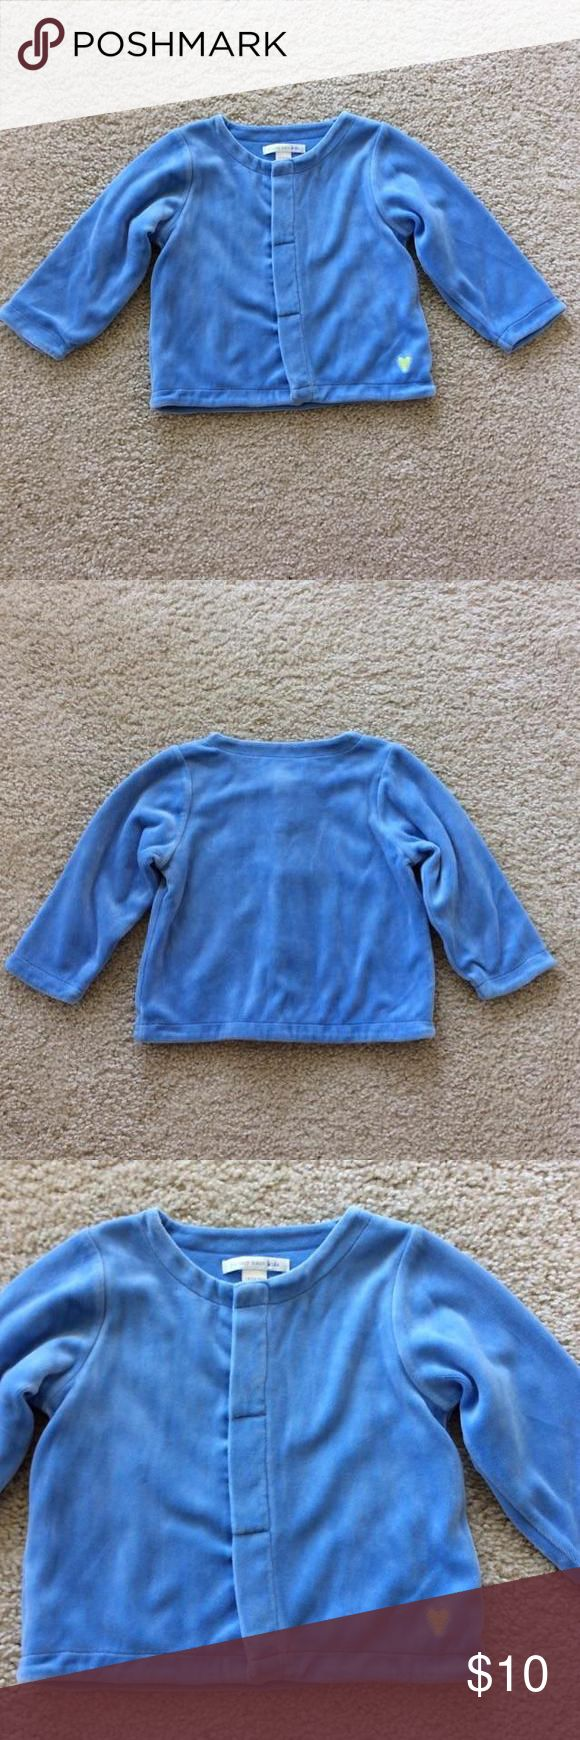 👫Pottery Barn Kids jacket Pottery Barn Kids jacket. Super soft velour like fabric 80 cotton 20 polyester. 100% cotton Lmk Ning. Snap front closure. Size 18-24 mths. Excellent condition. Pottey Barn Kids Jackets & Coats